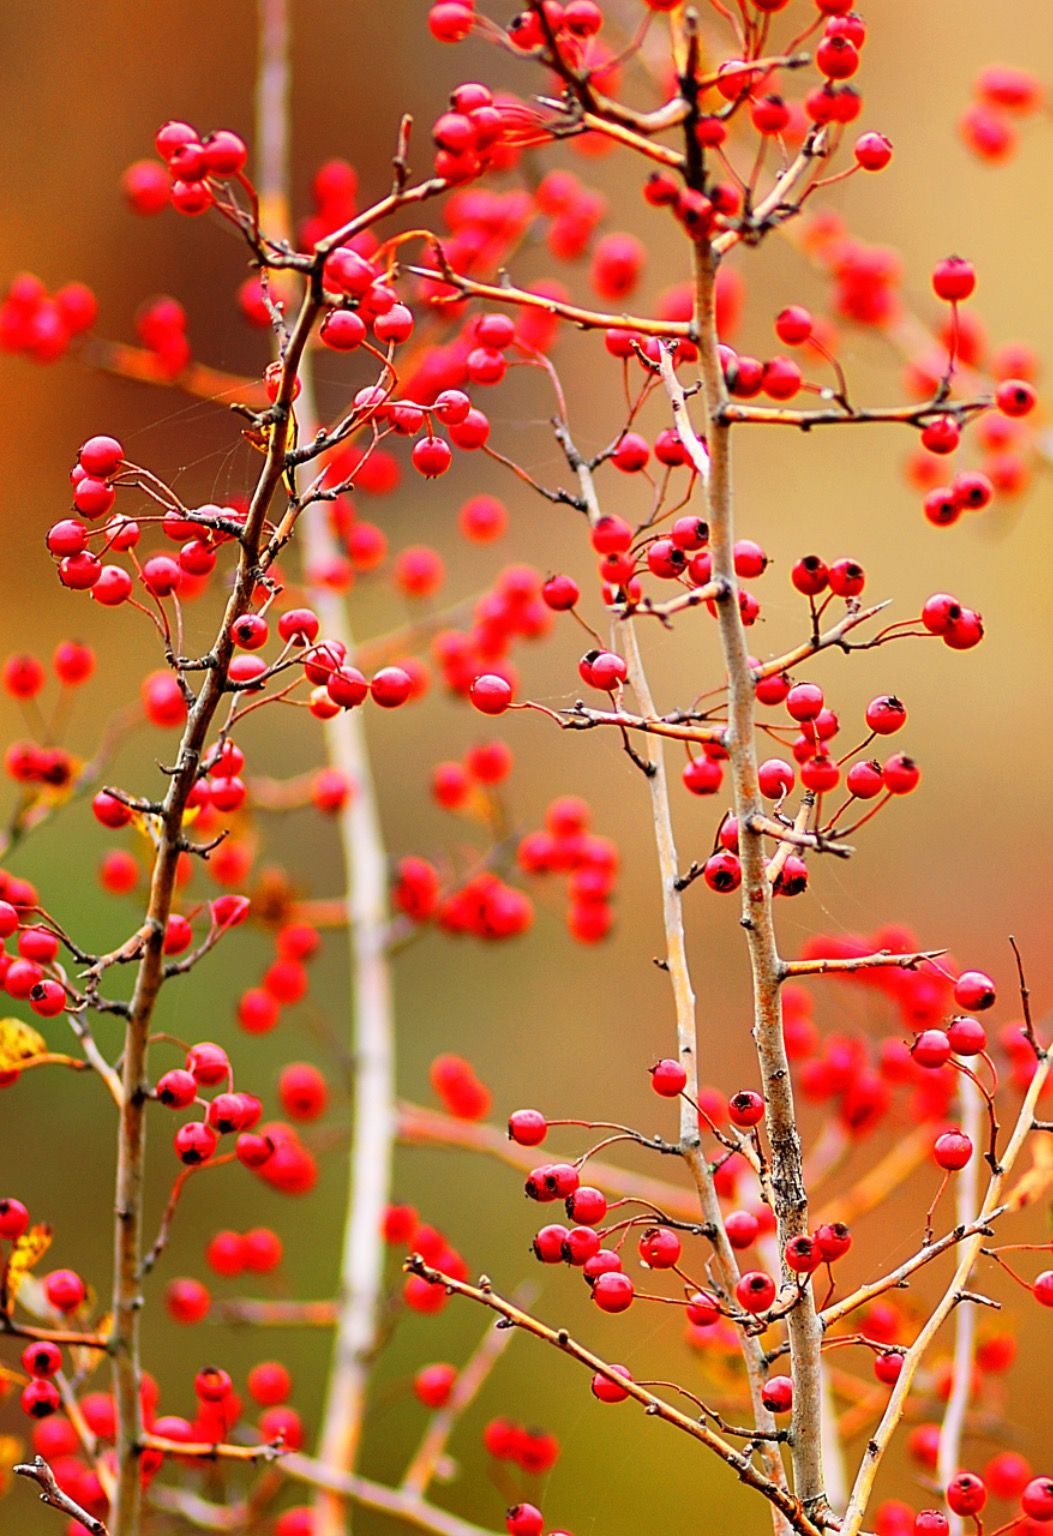 hawthorn and berries by Andriy Solovyov